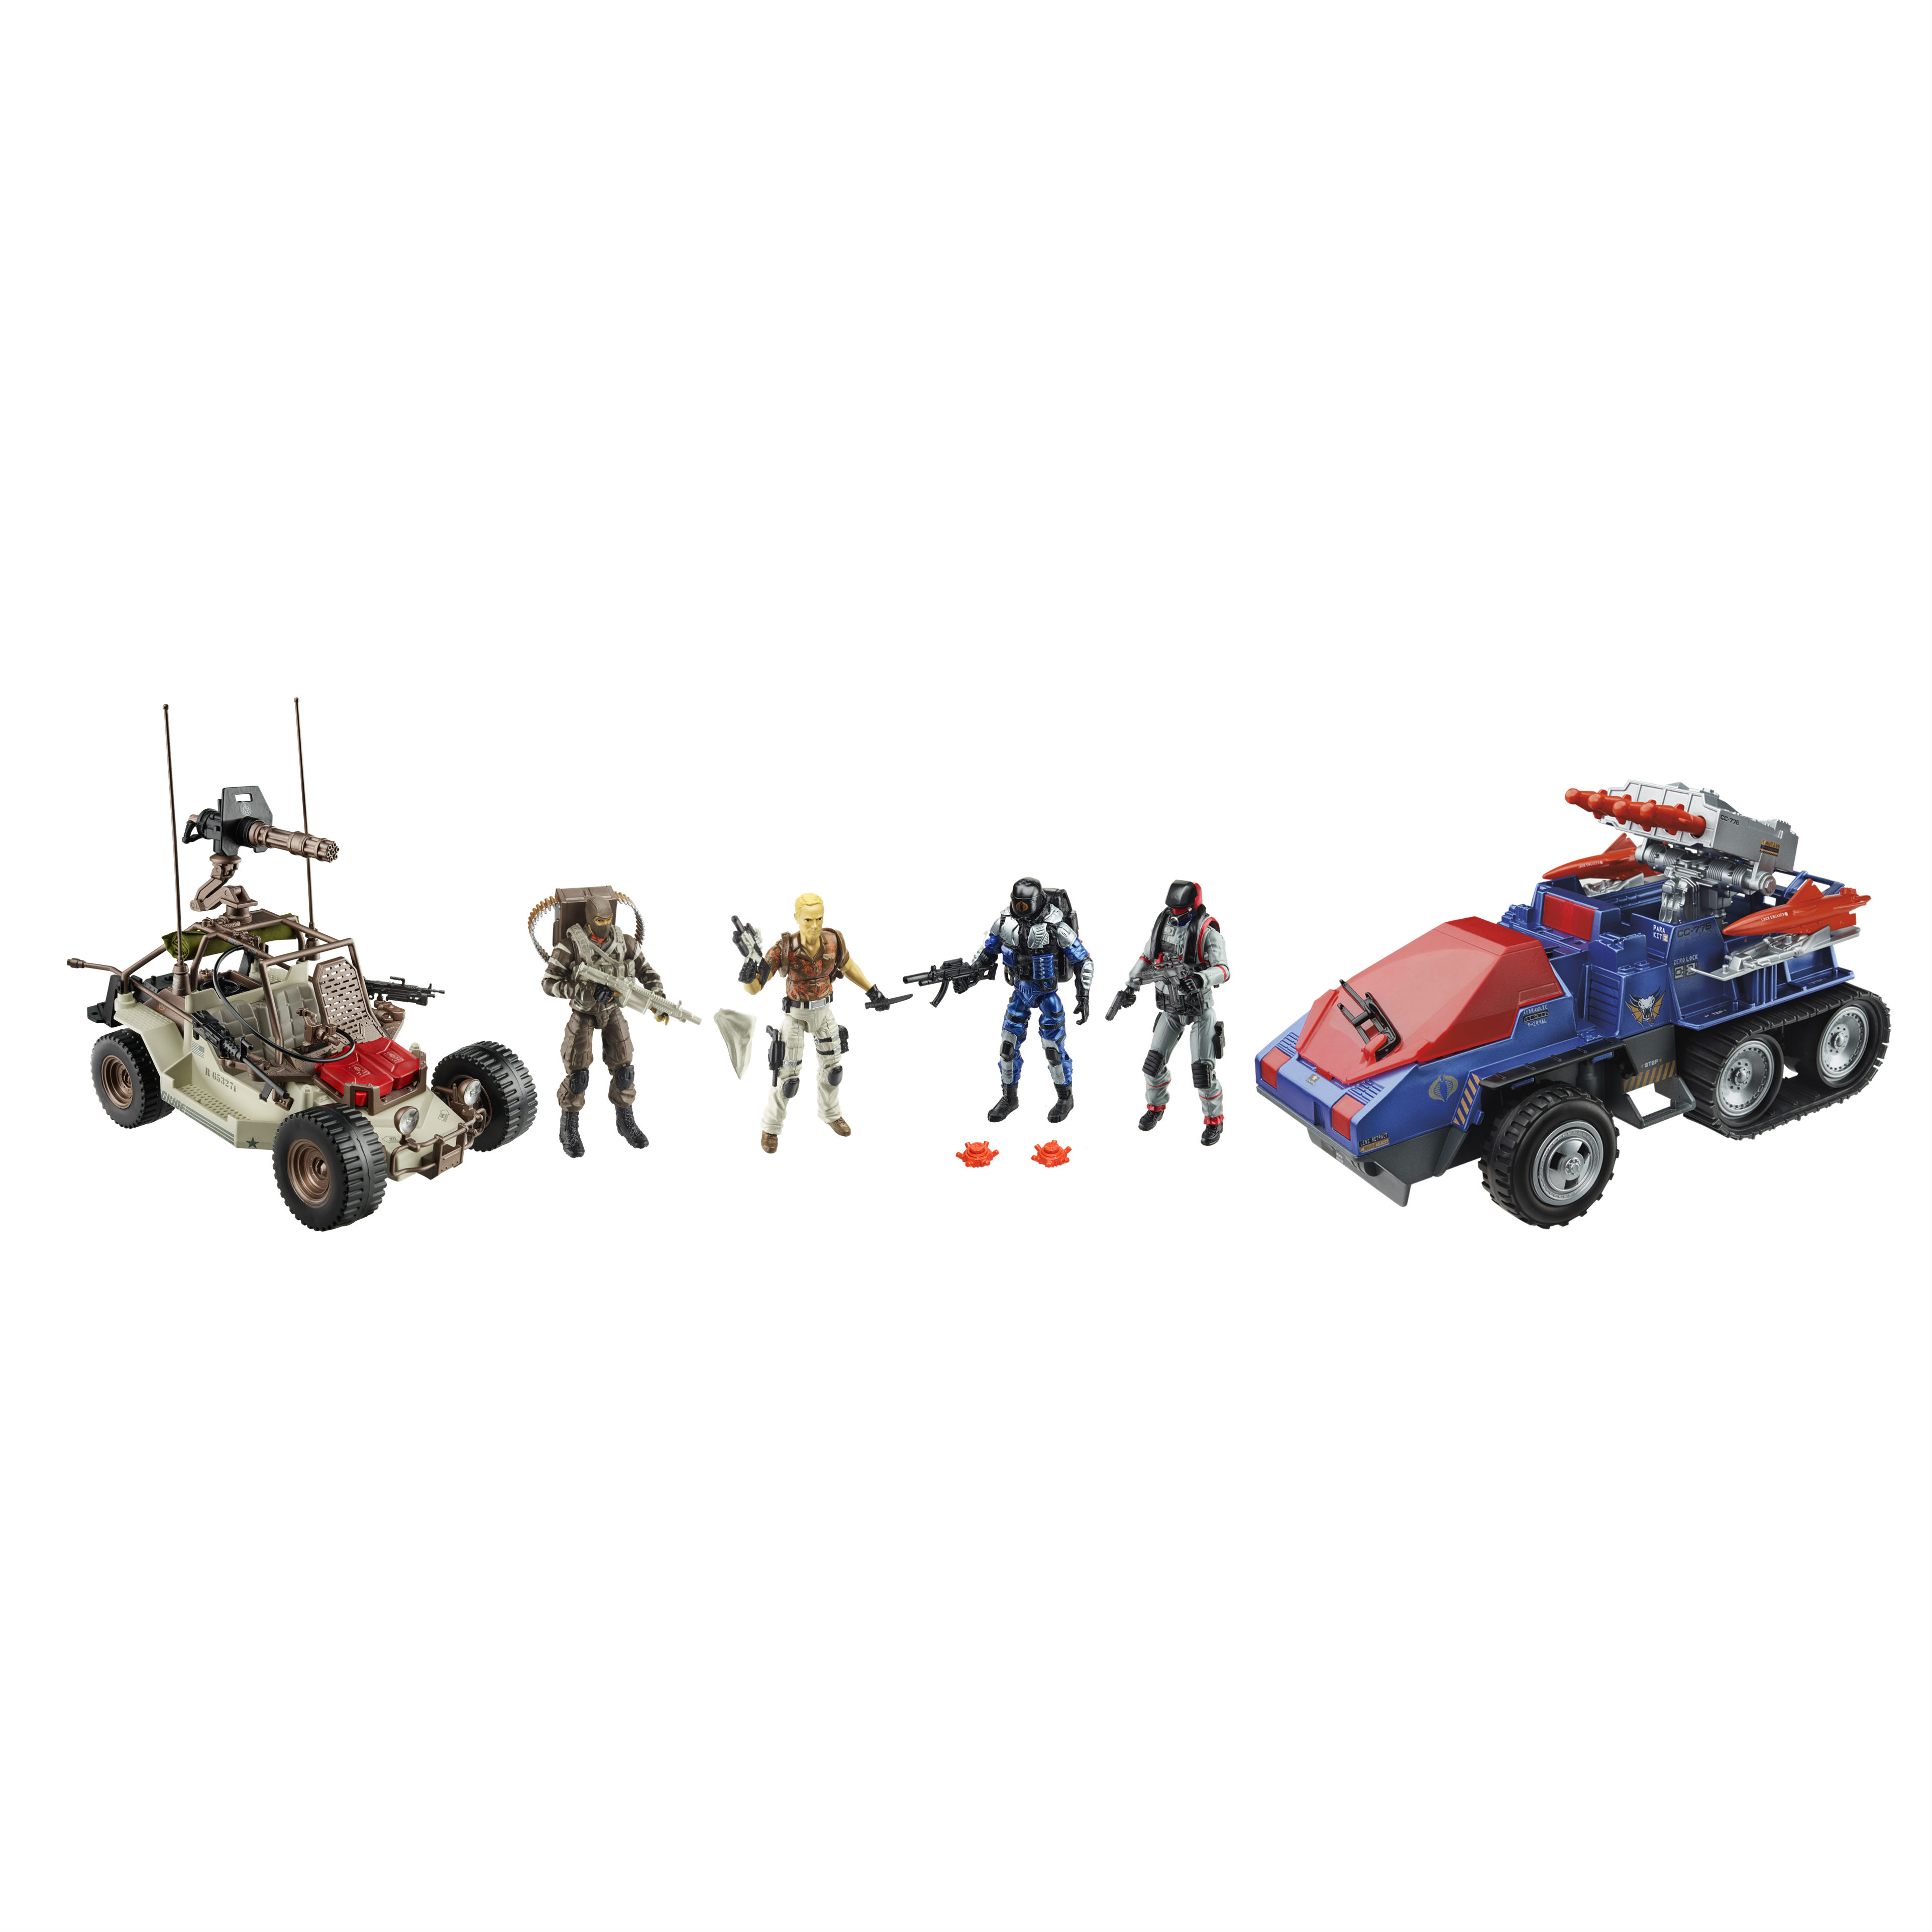 1:18 action figure archive : GI Joe 50th anniversary checklist